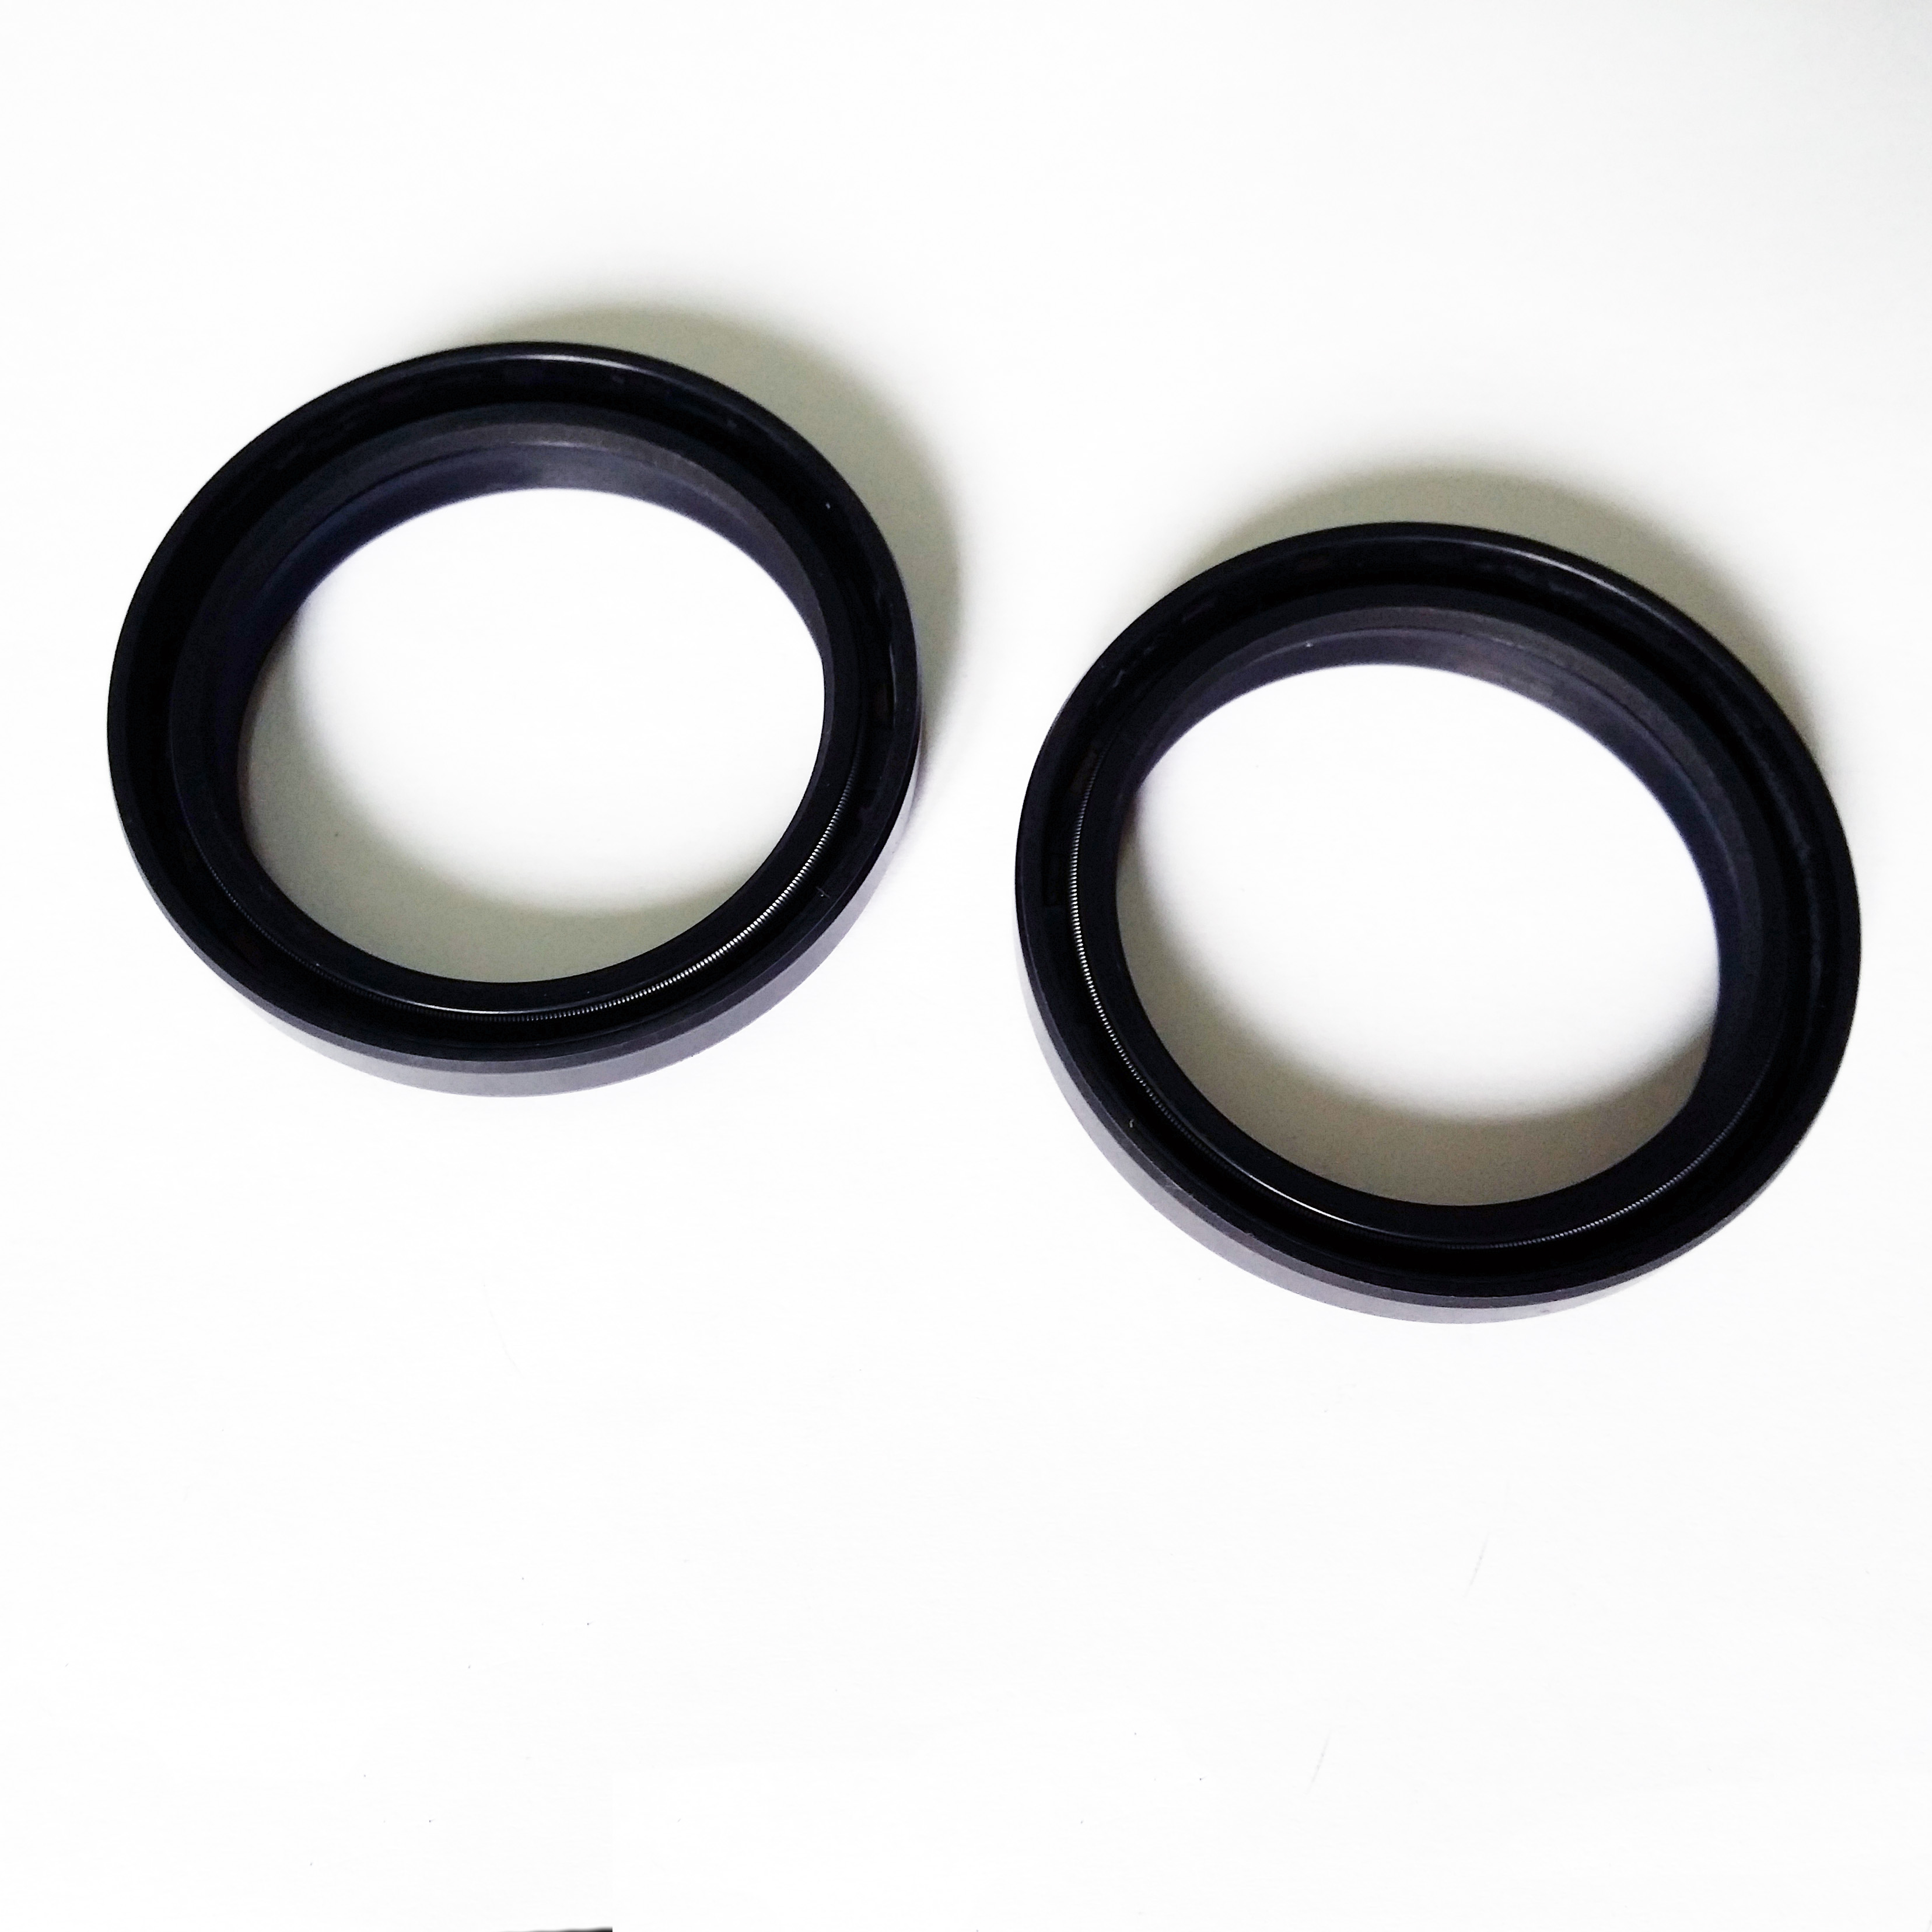 K-Tech Husqvarna CR125 2010-2013 NOK Front Fork Oil Seals